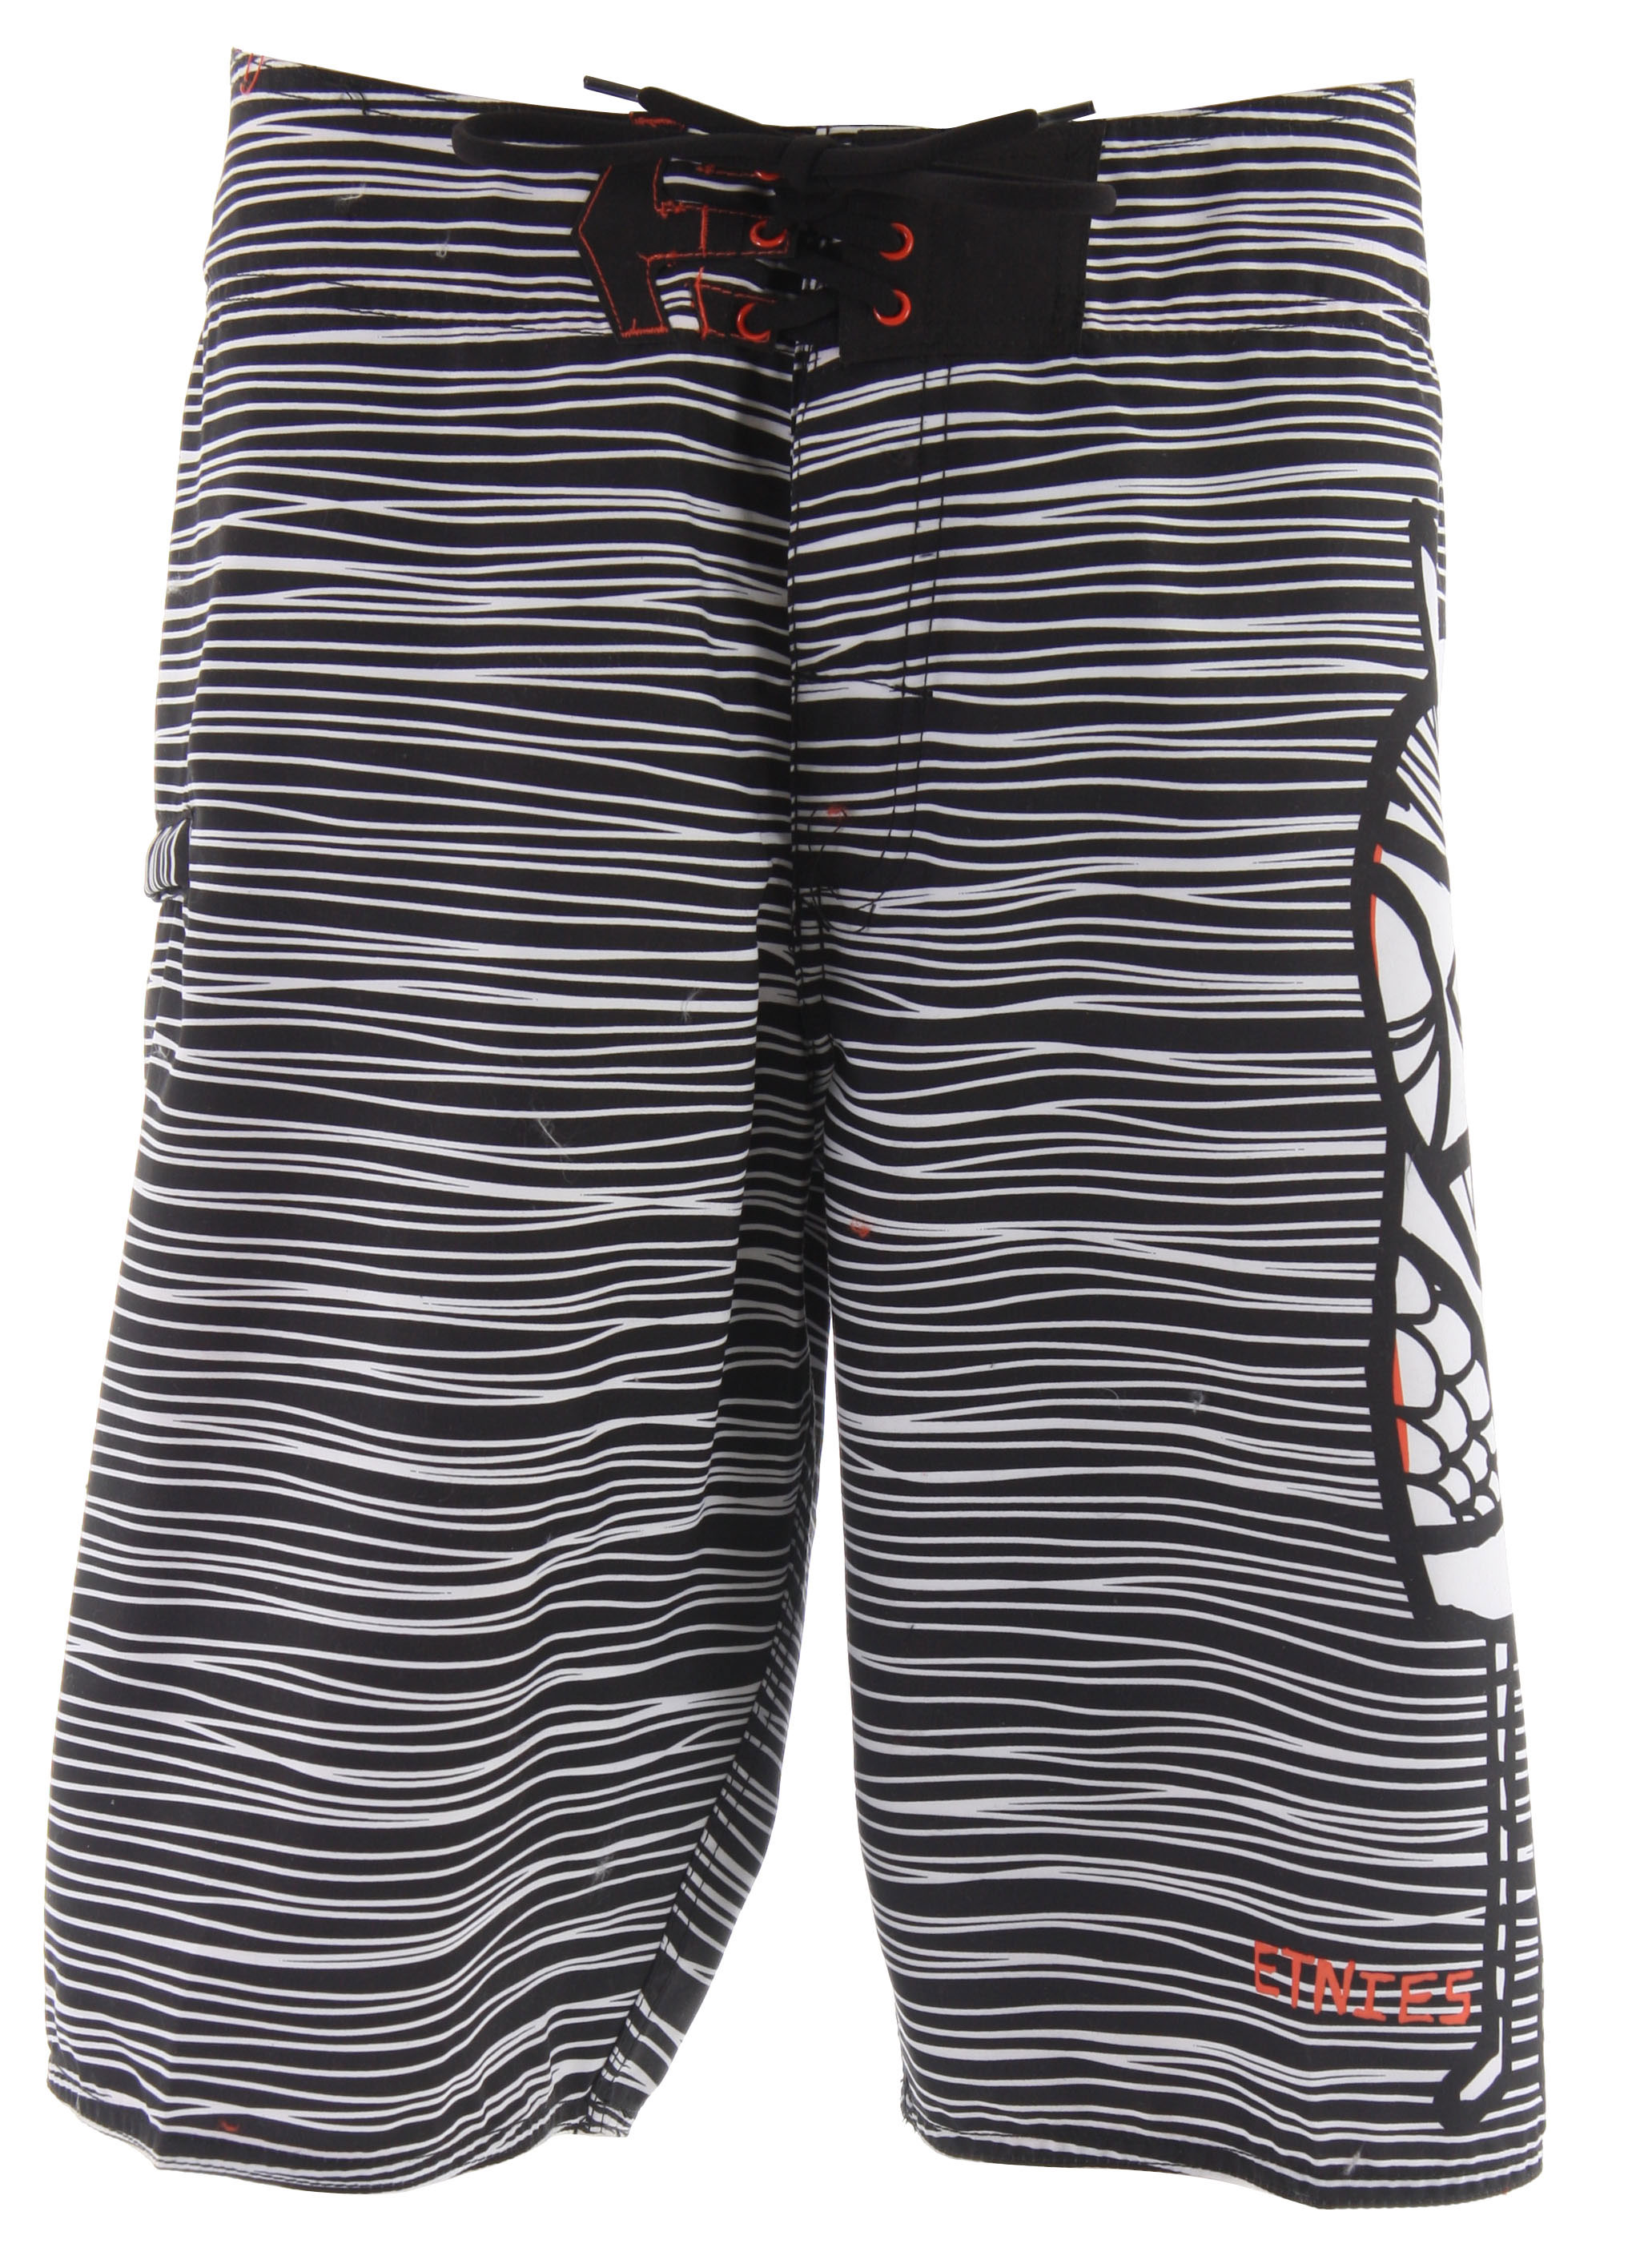 Skateboard Key Features of the Etnies Amigo Boardshorts: 100% polyester Dynasuede board short Assorted pattern prints etnies Icon tab feature at waistband Zip welt pocket on right leg Hollywood waistband Art on back colorway by Don Pendleton - $39.95